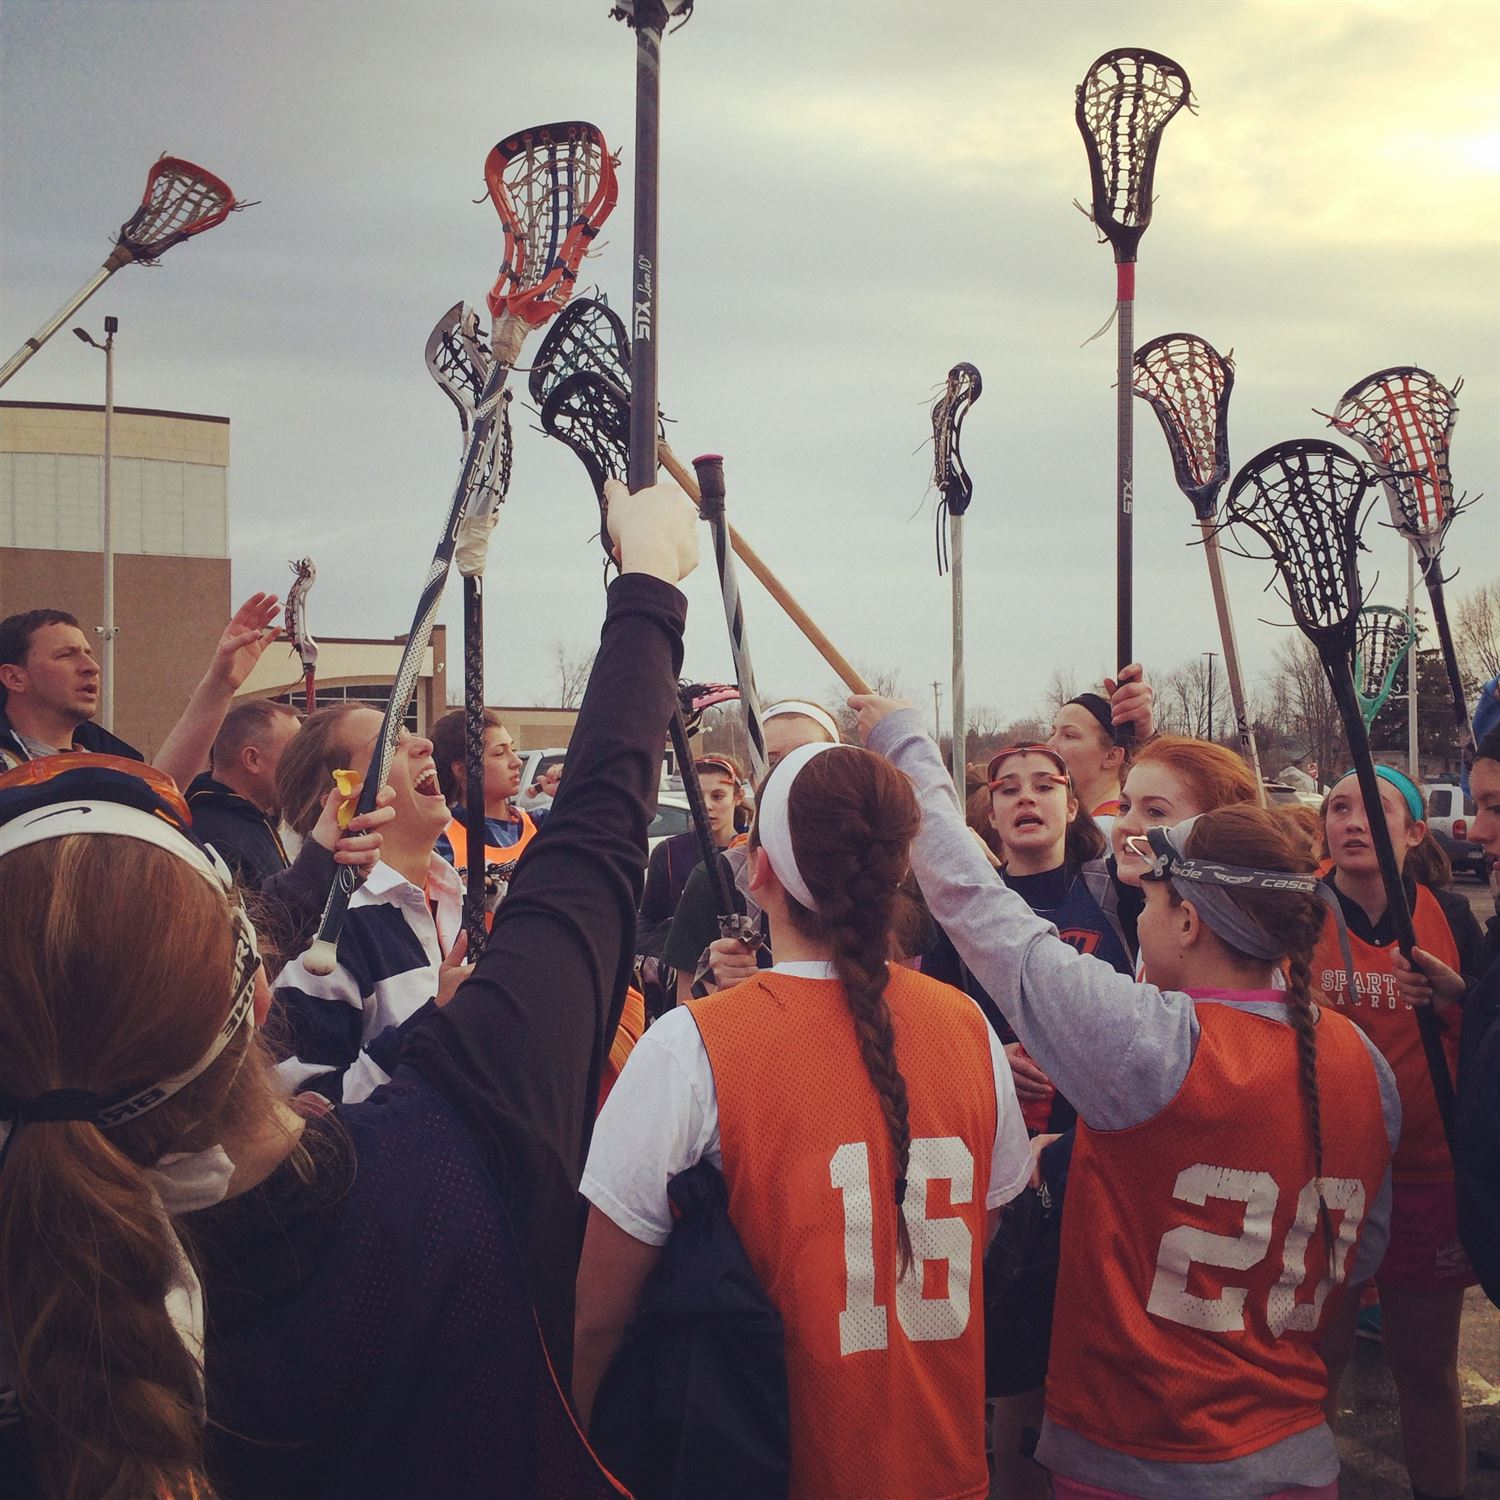 East Syracuse-Minoa High School - Girls' Lacrosse